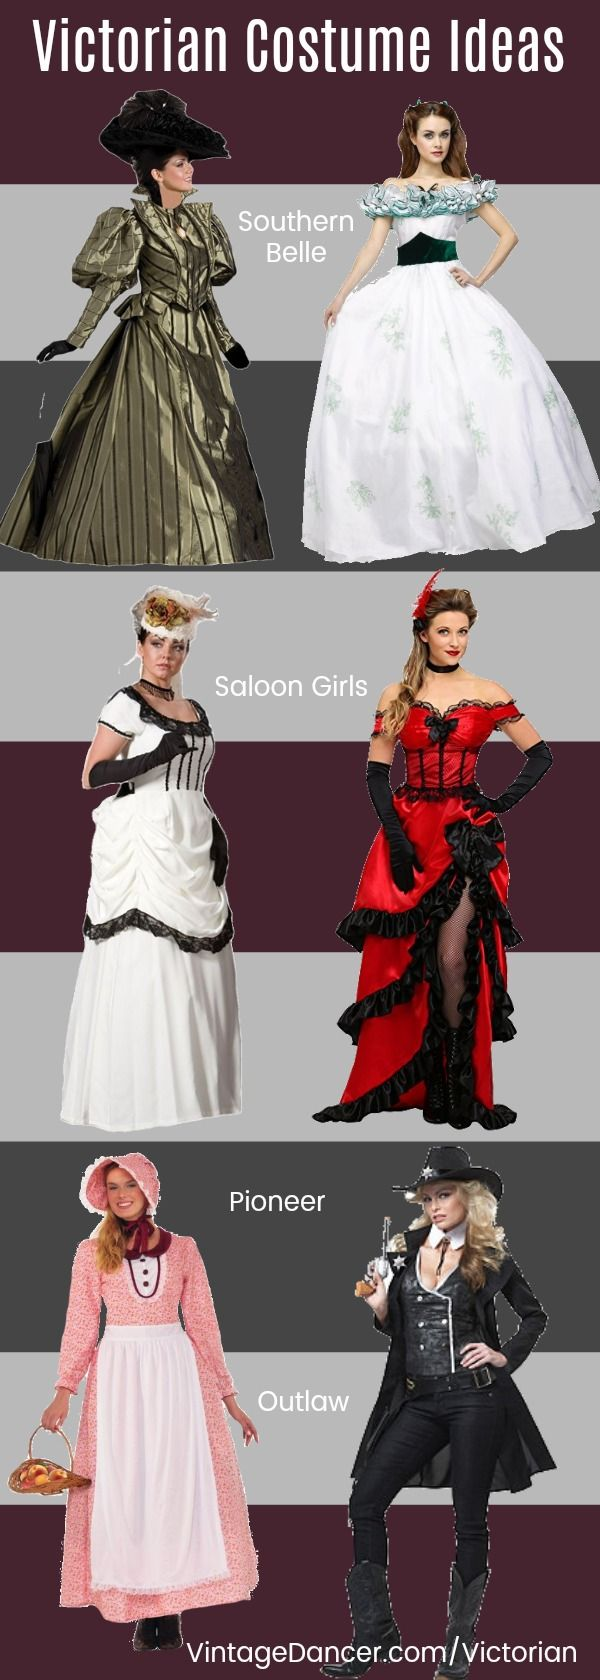 91f138096 Classic Victorian costumes - Civil War